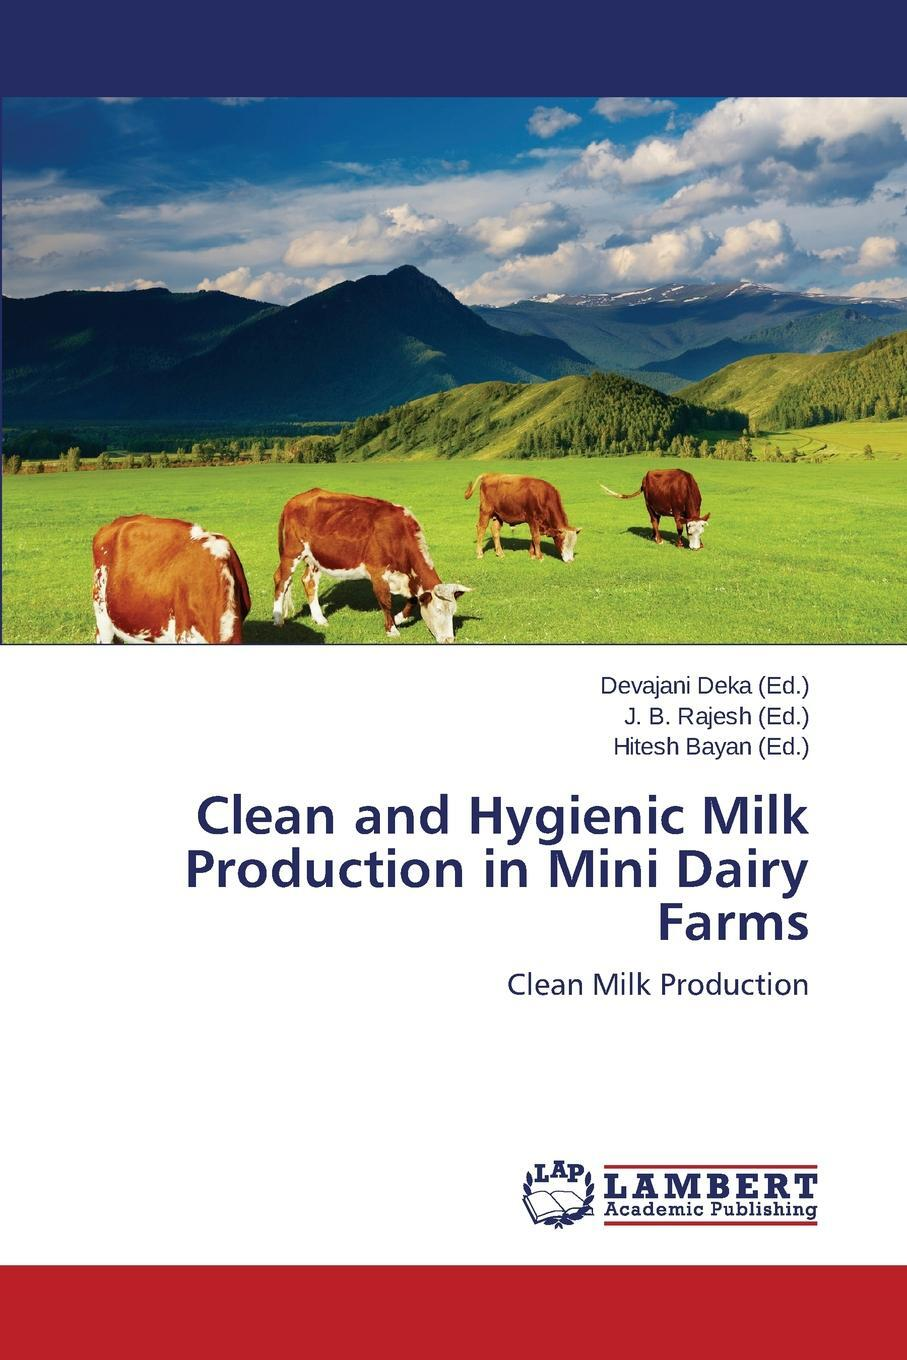 Clean and Hygienic Milk Production in Mini Dairy Farms